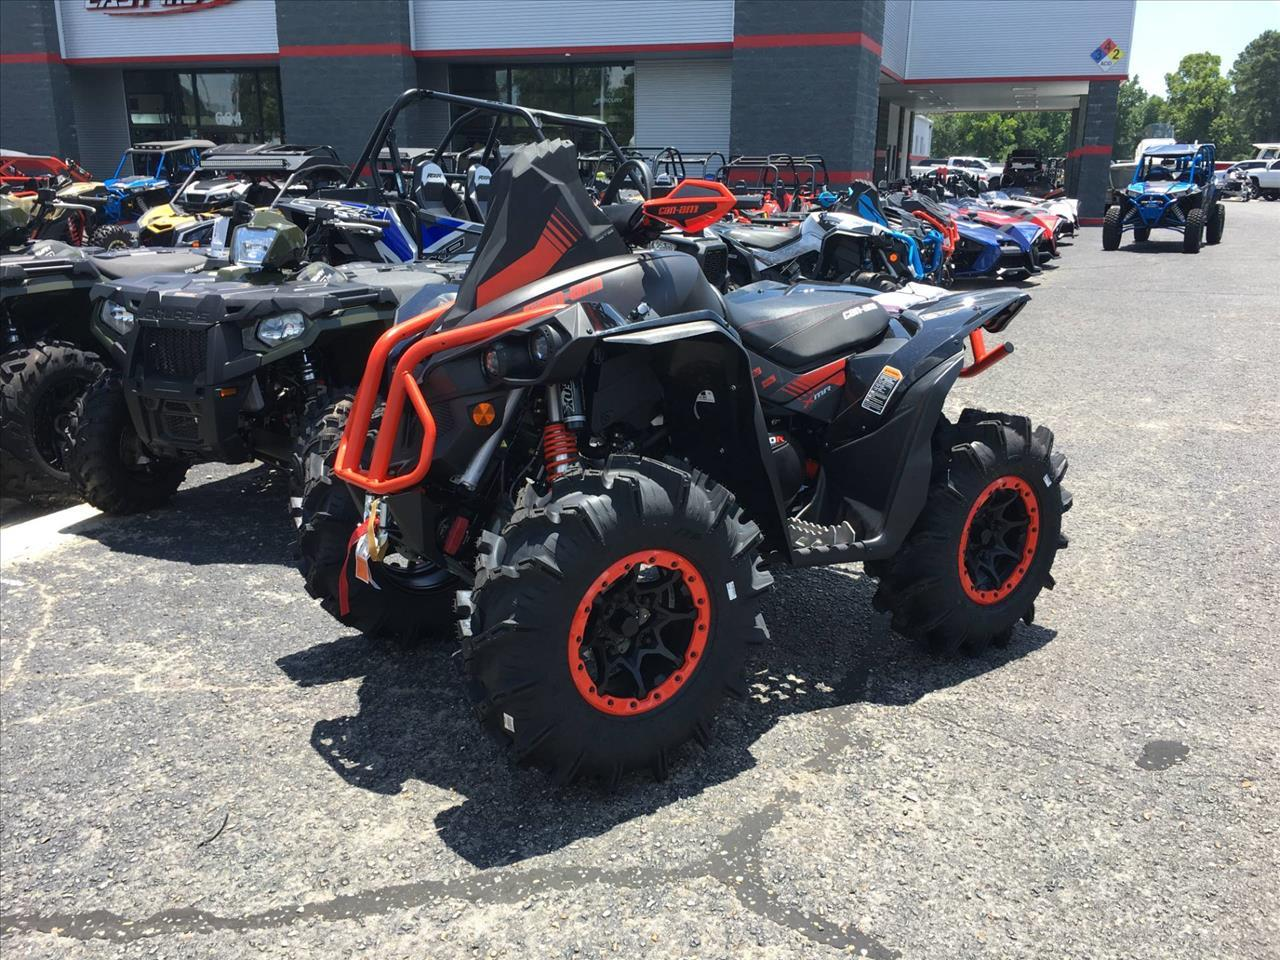 2018 Can-Am Renegade for sale at Vehicle Network, LLC - Performance East, INC. in Goldsboro NC